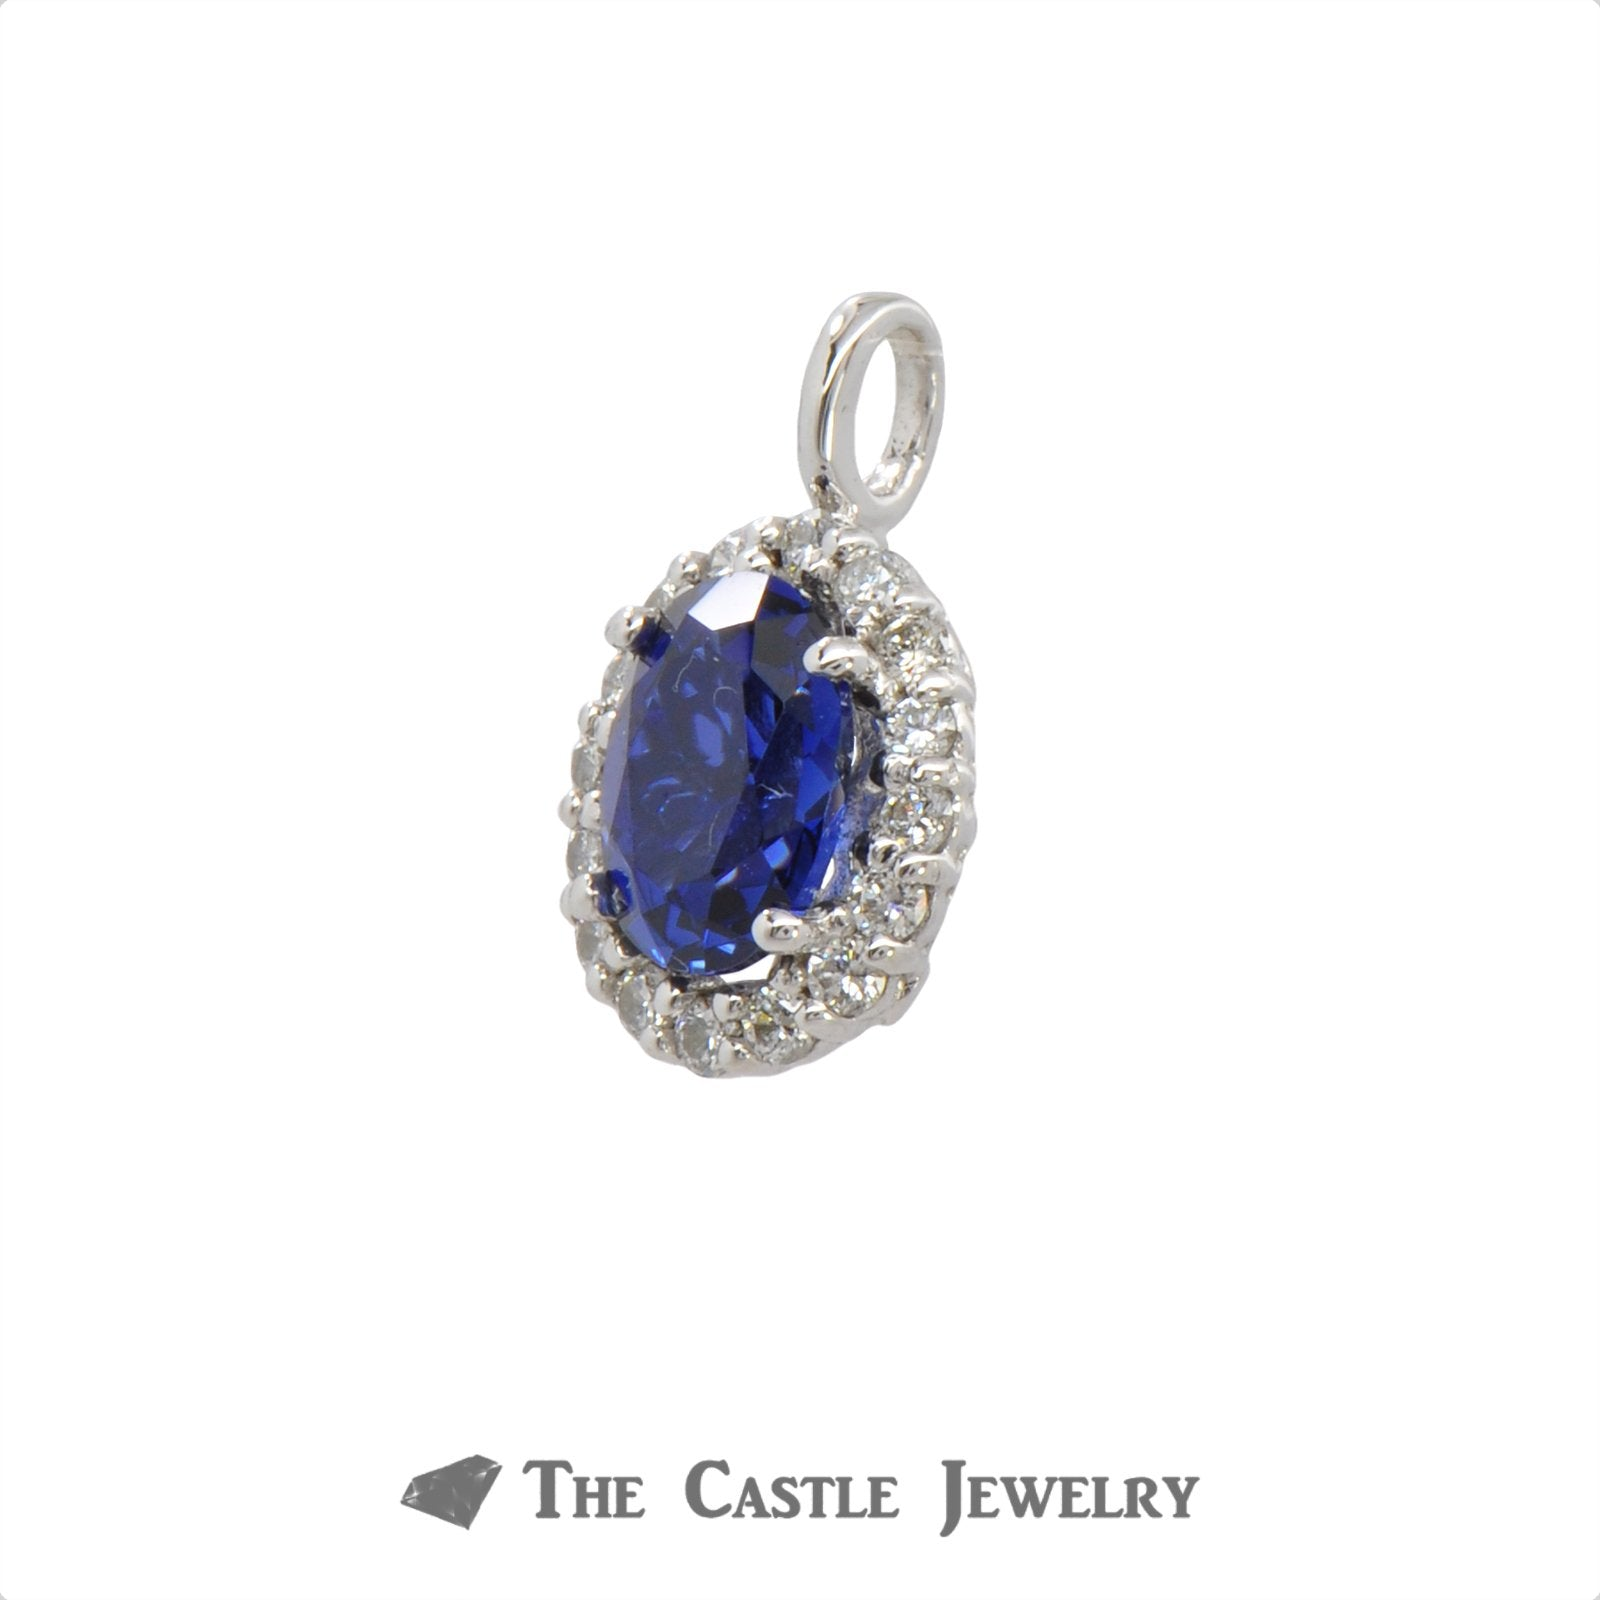 Diamond And Diffused Sapphire Pendant 1.95 ctgw In 14KT White Gold-1